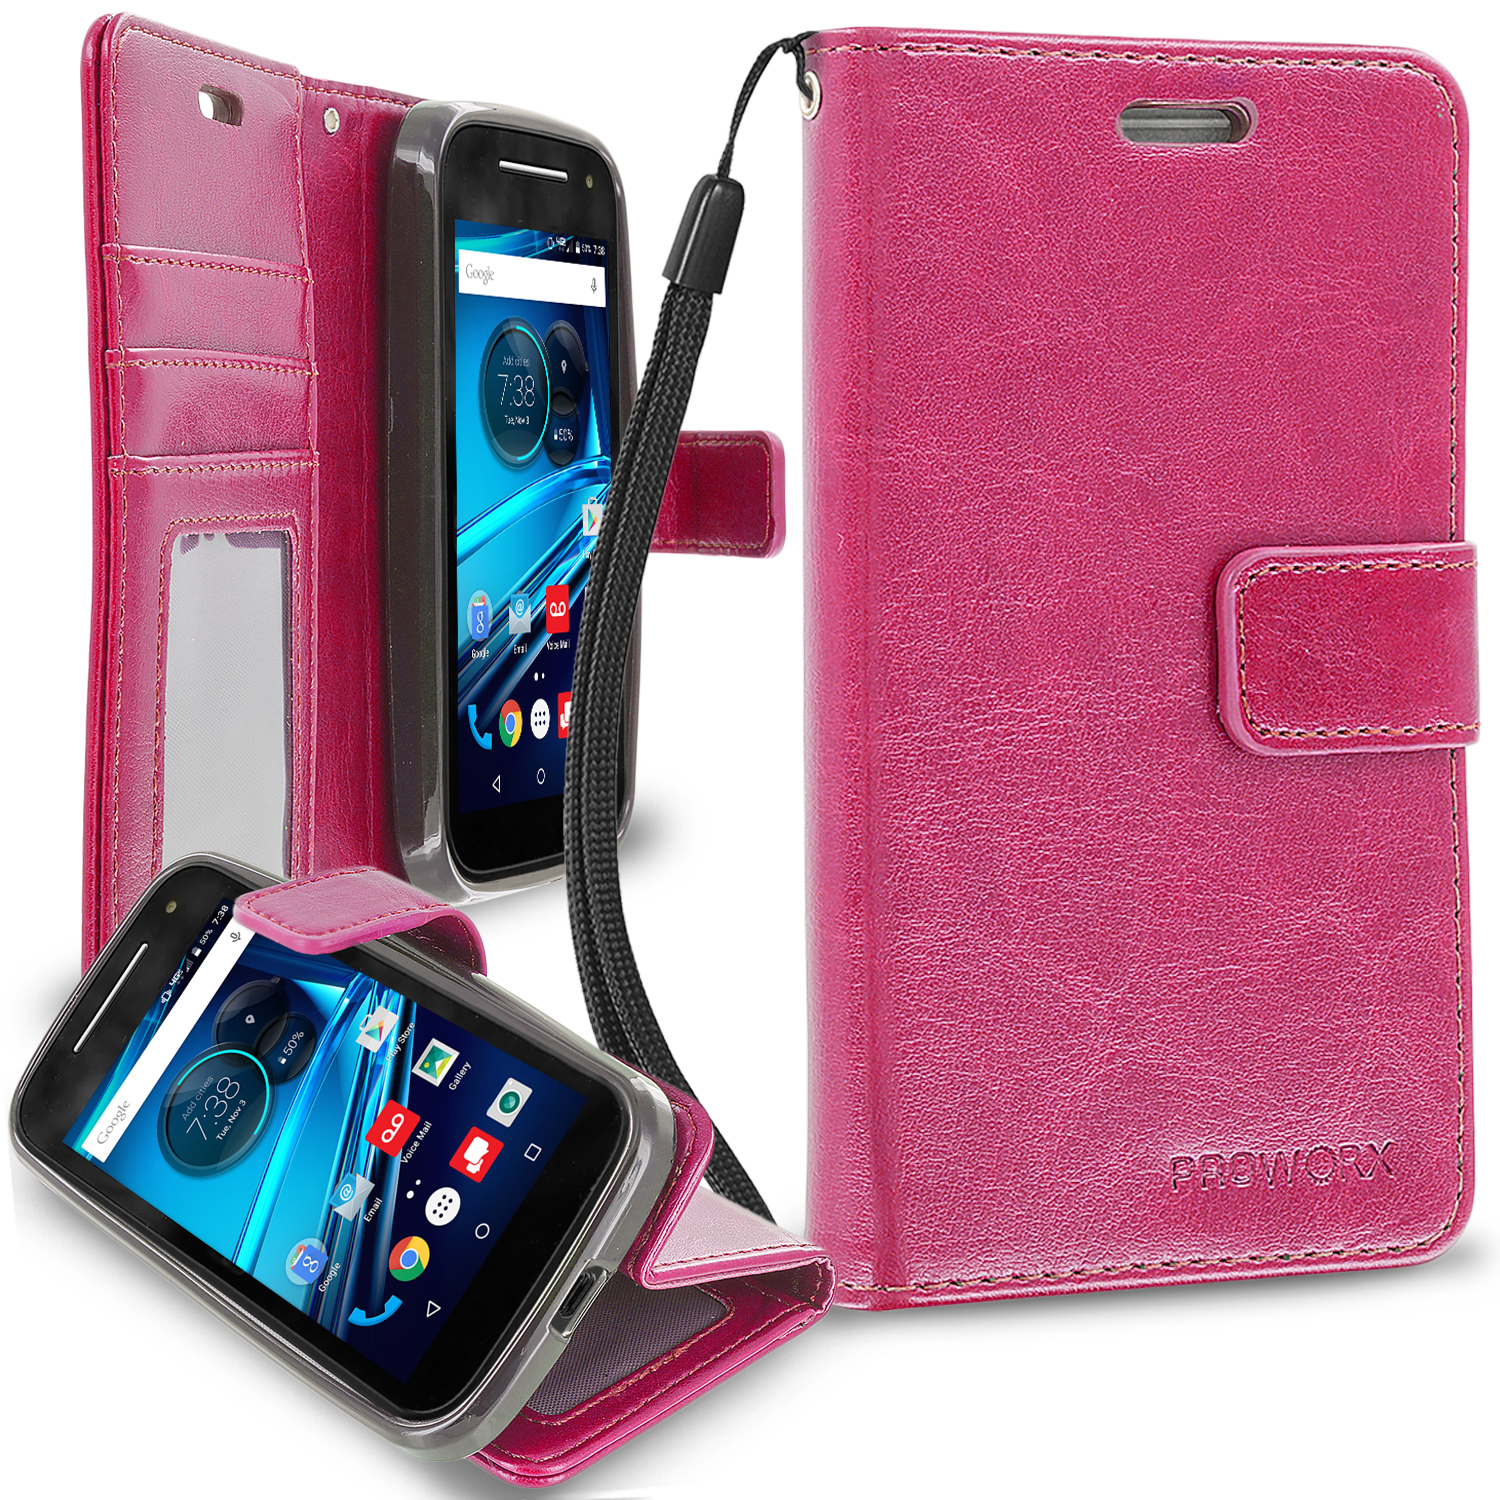 Motorola Moto E LTE 2nd Generation Hot Pink ProWorx Wallet Case Luxury PU Leather Case Cover With Card Slots & Stand